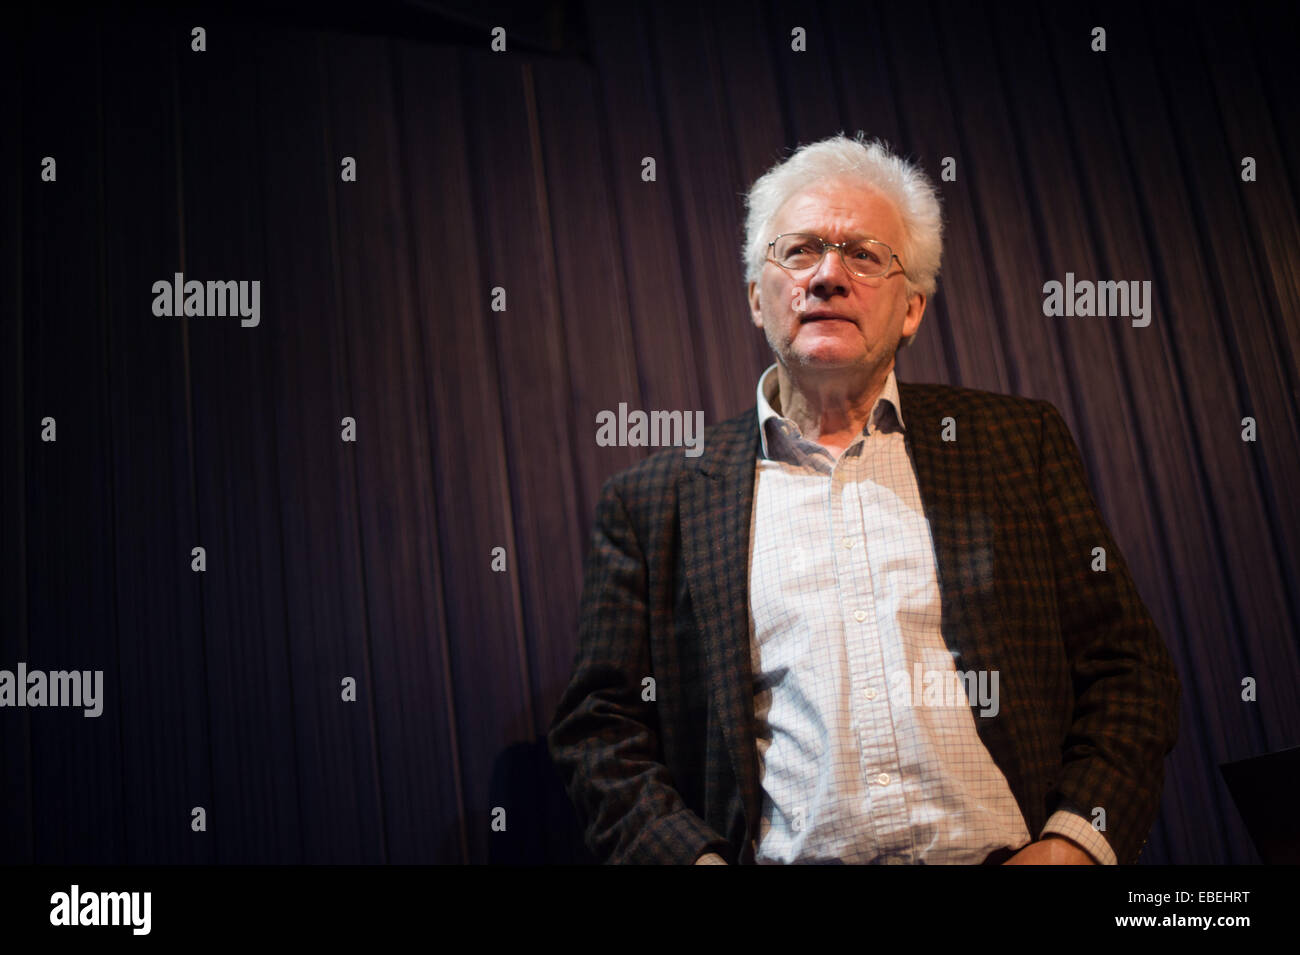 Aberystwyth Wales UK, Saturday November 29 2014   HOMER SYKES veteran photojournalist at the LENS 10 festival of - Stock Image